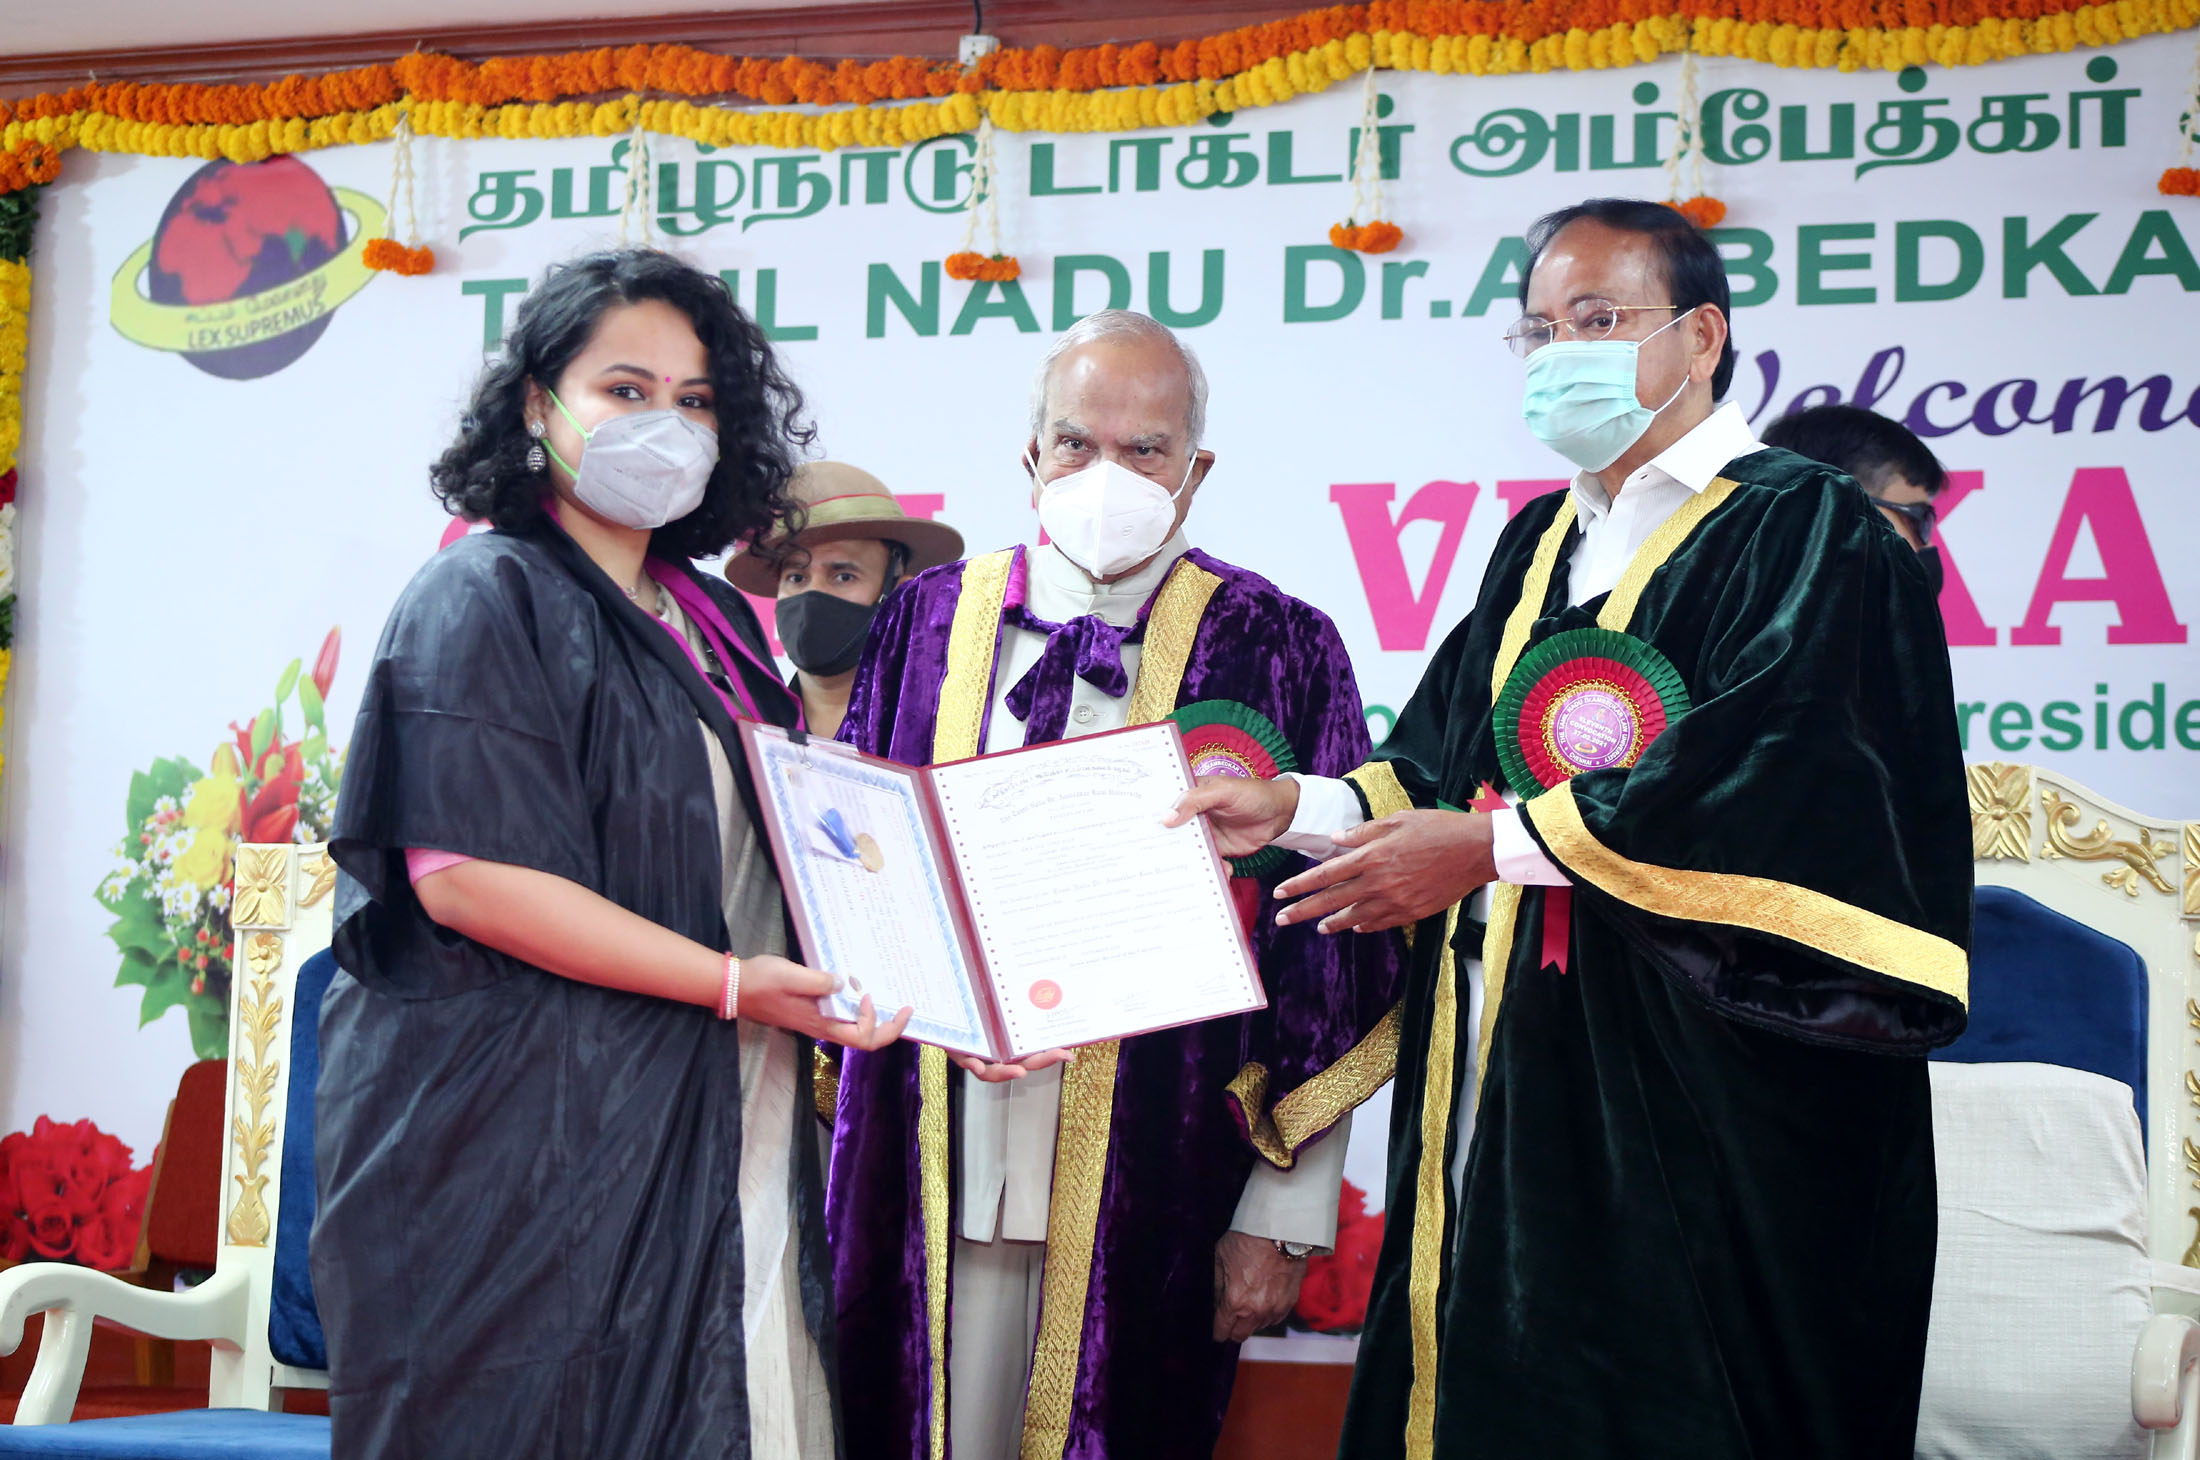 The Vice President, Shri M. Venkaiah Naidu presenting degrees to the students at the 11th Convocation of the Tamil Nadu Dr. Ambedkar Law University, in Chennai, Tamil Nadu on February 27, 2021. The Governor of Tamil Nadu, Shri Banwarilal Purohit is also seen.